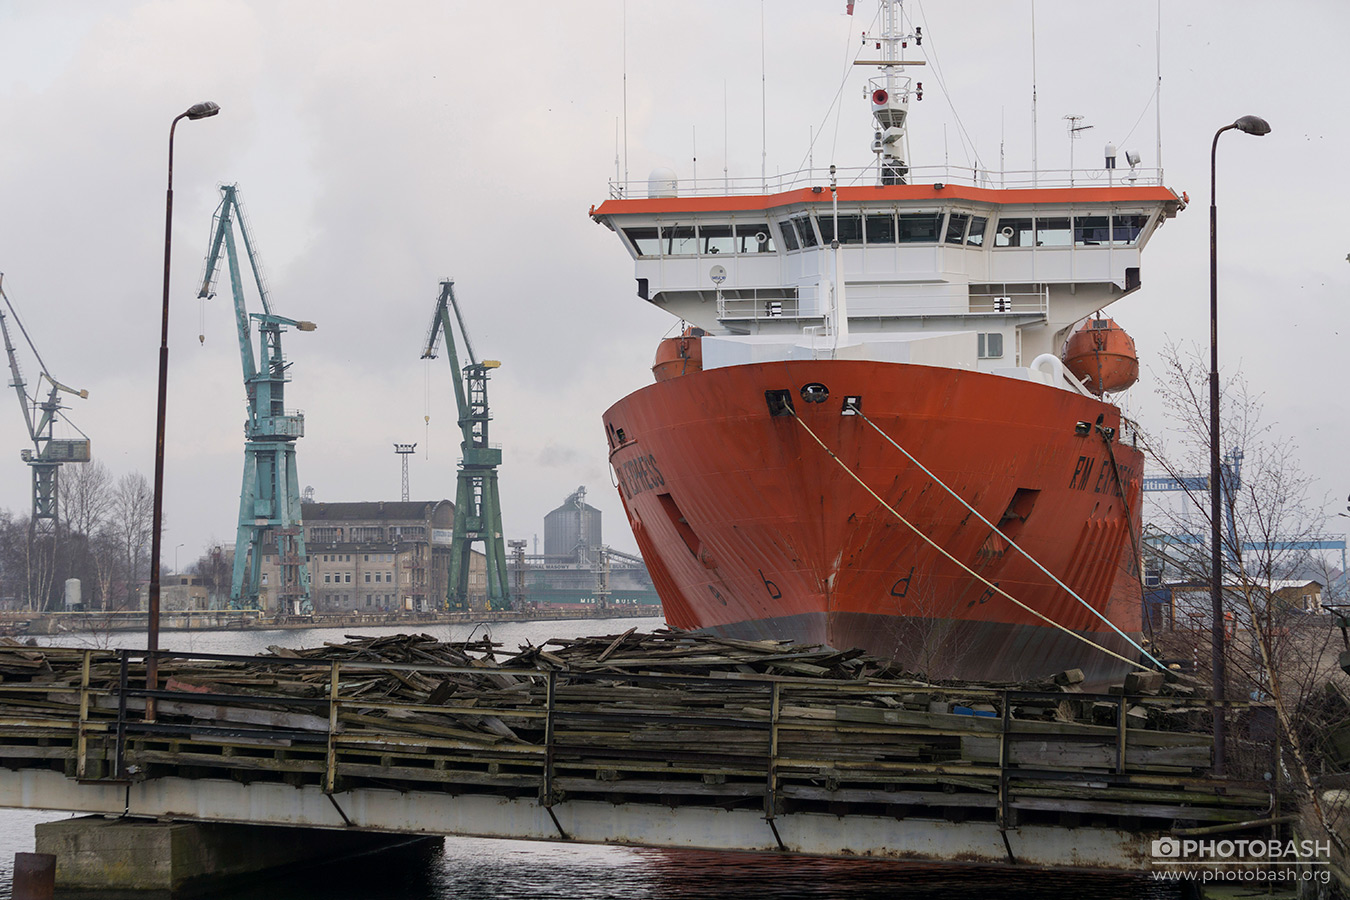 Shipping-Containers-Cranes-Boat.jpg